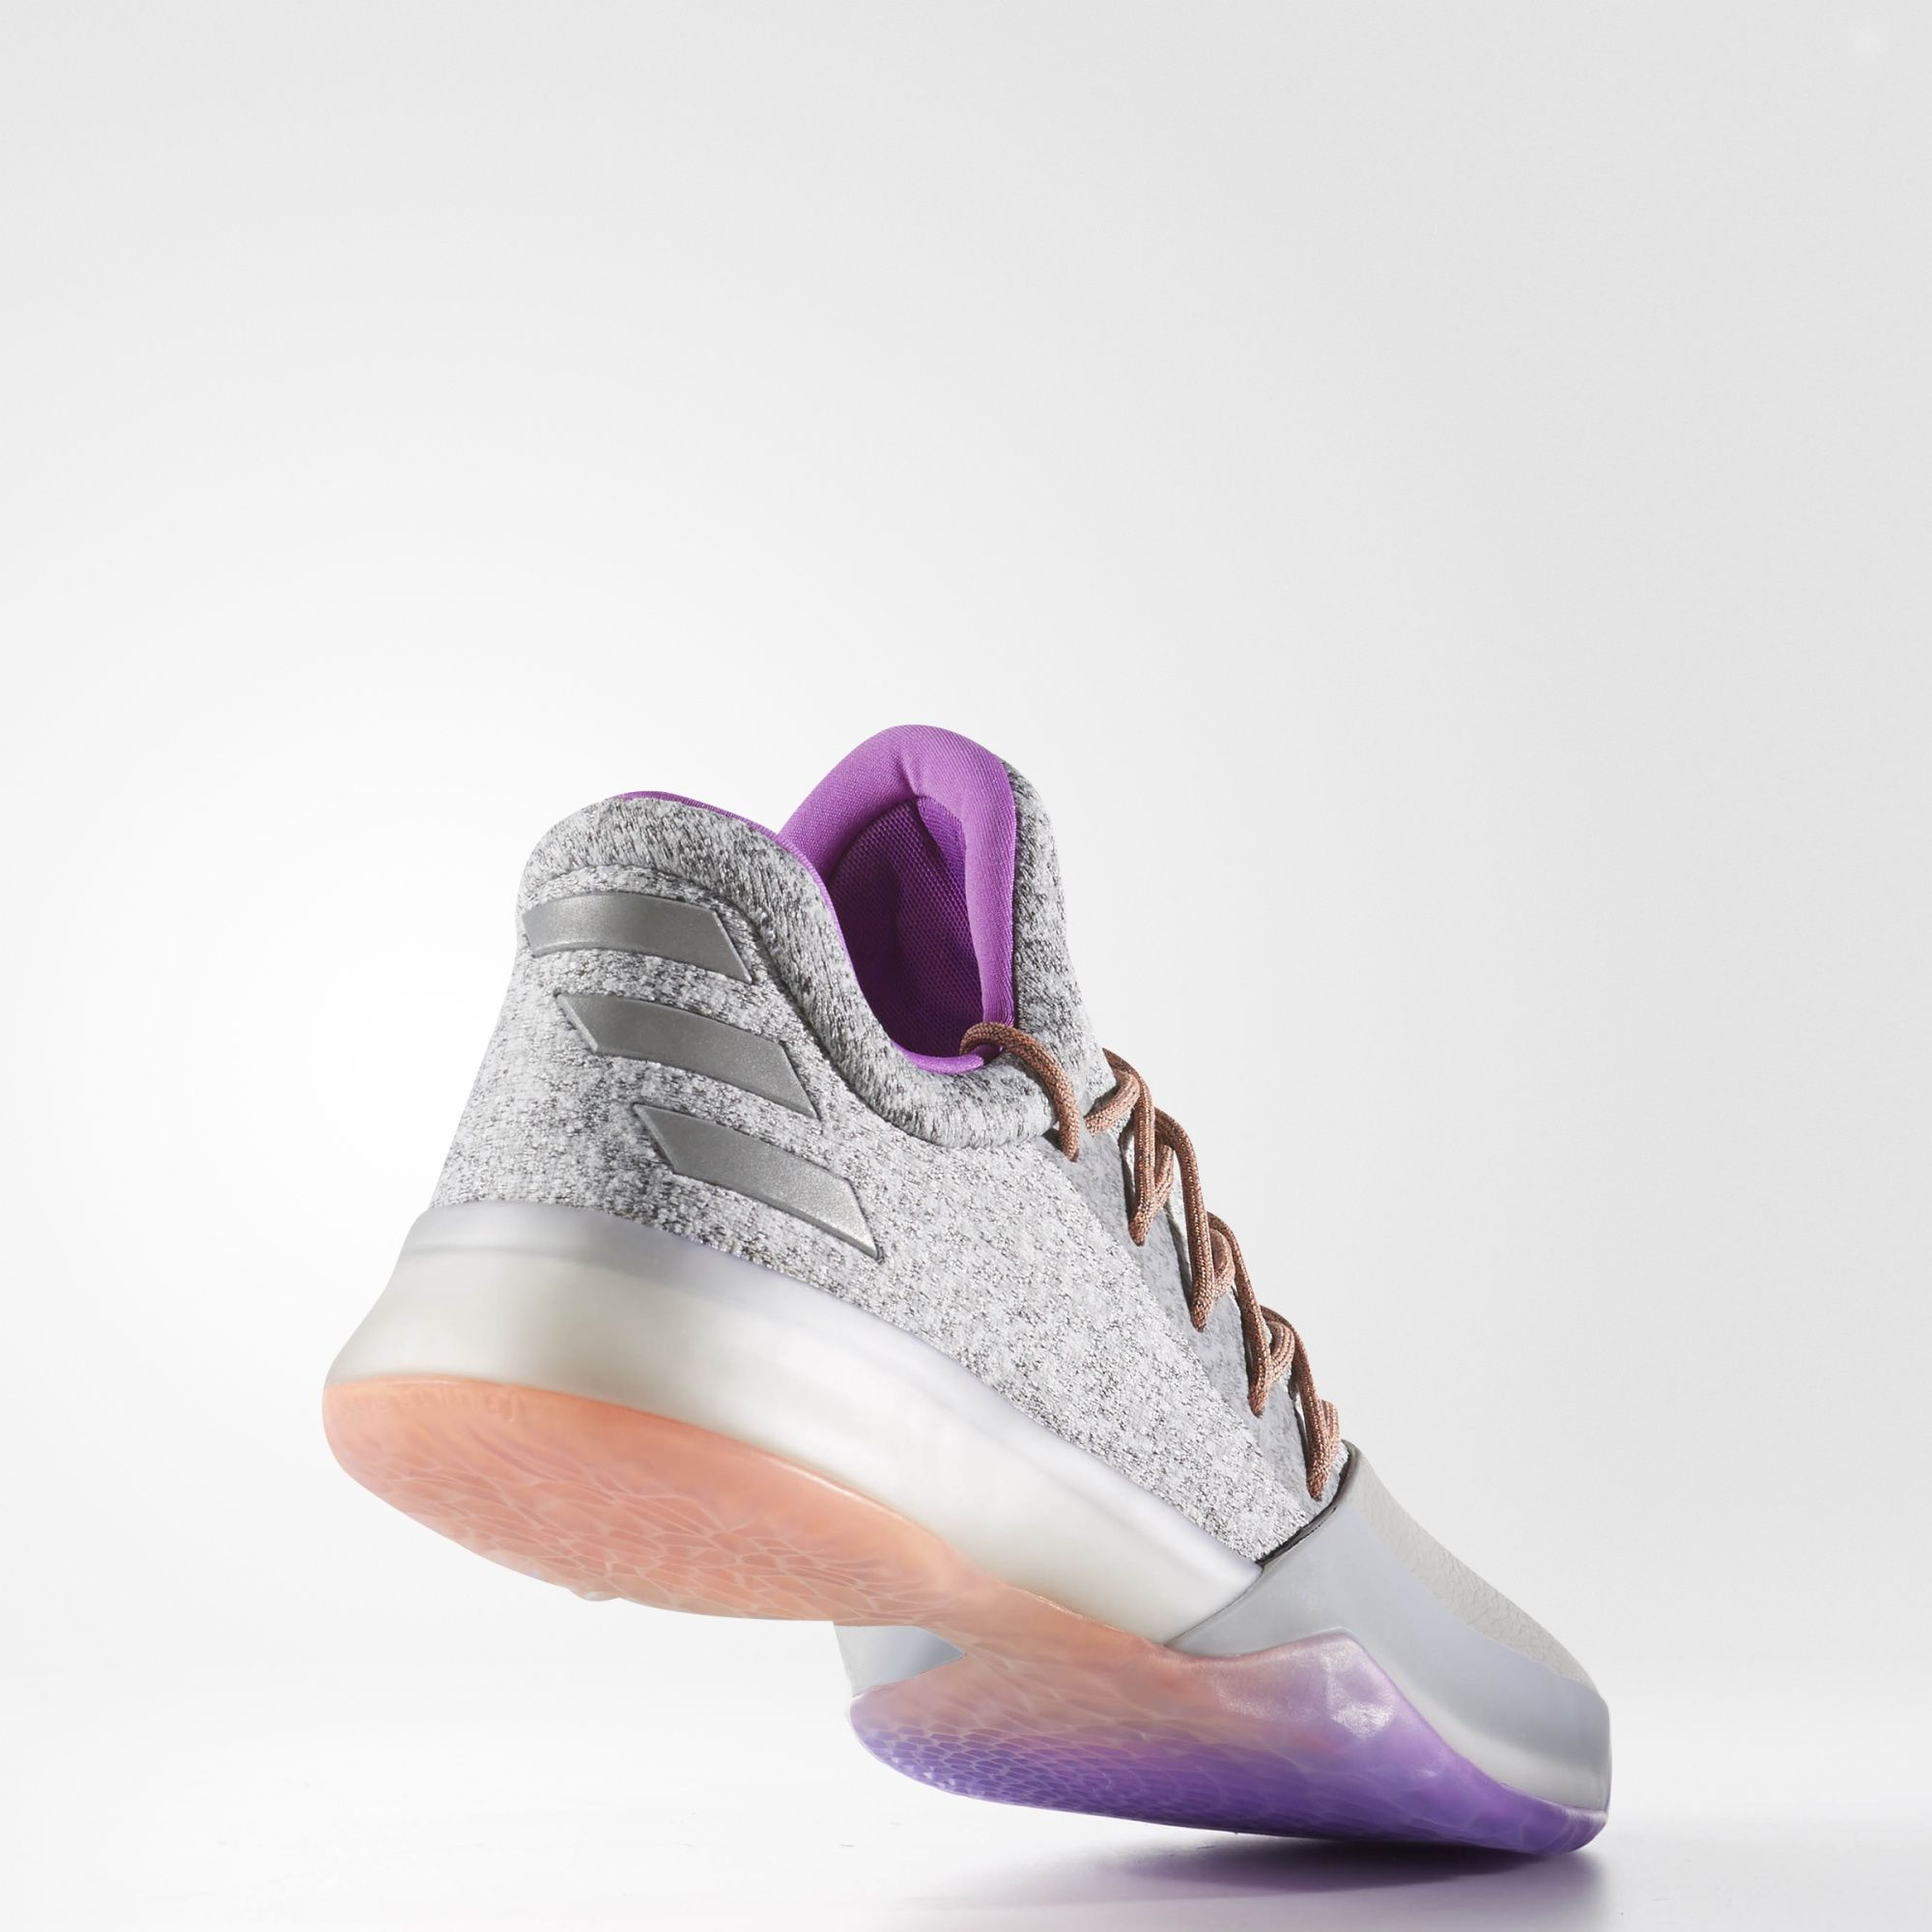 adidas Harden Vol. 1 'All Star' 3